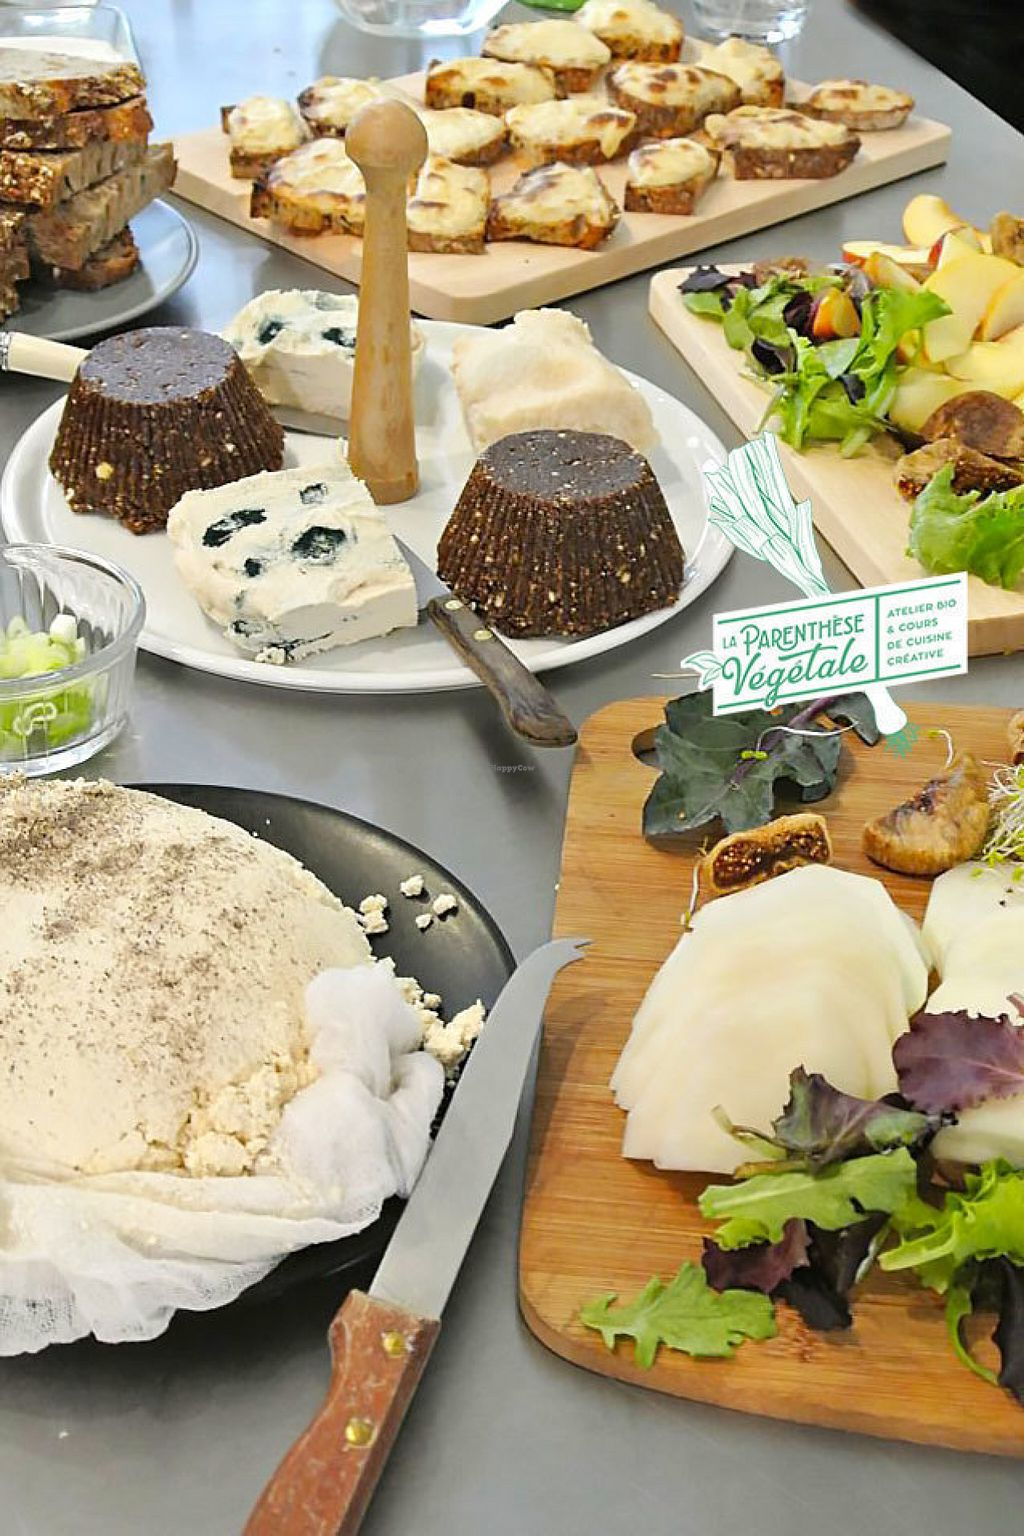 cours de cuisine vegan paris Delicious vegan homemade cheese at La Parenthese Vegetale in Paris